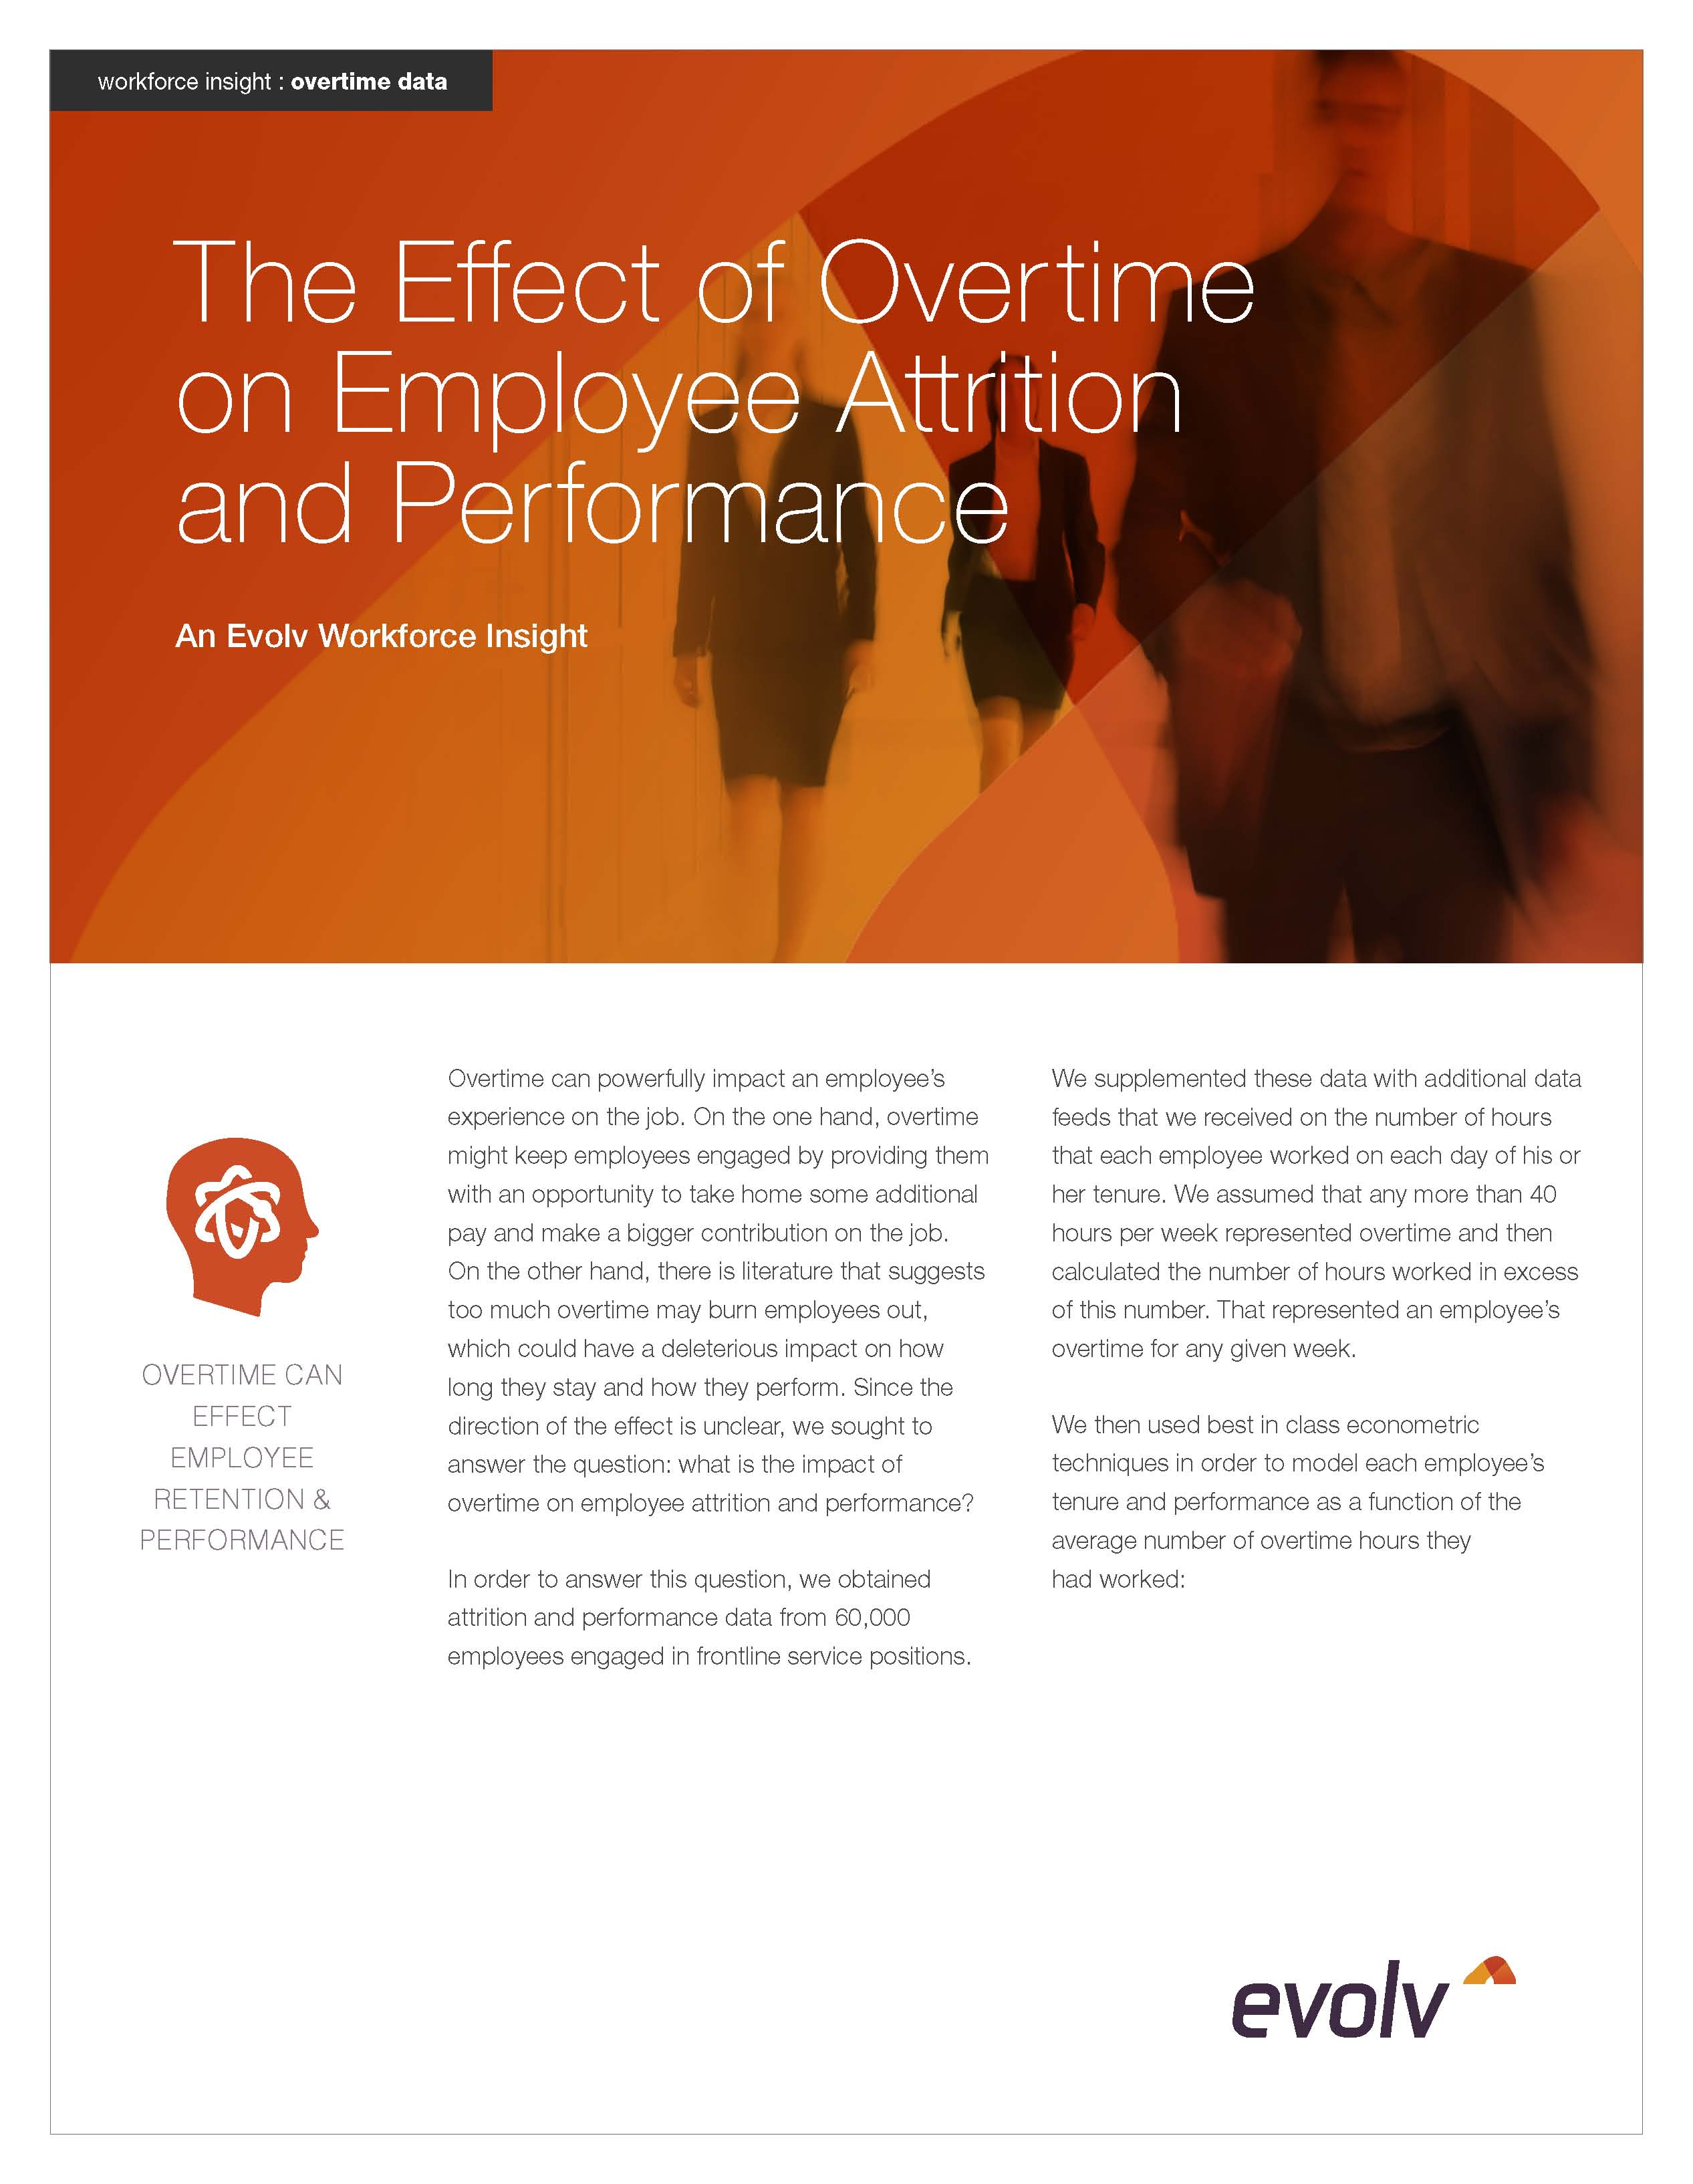 The Effect of Overtime on Employee Attrition and Performance